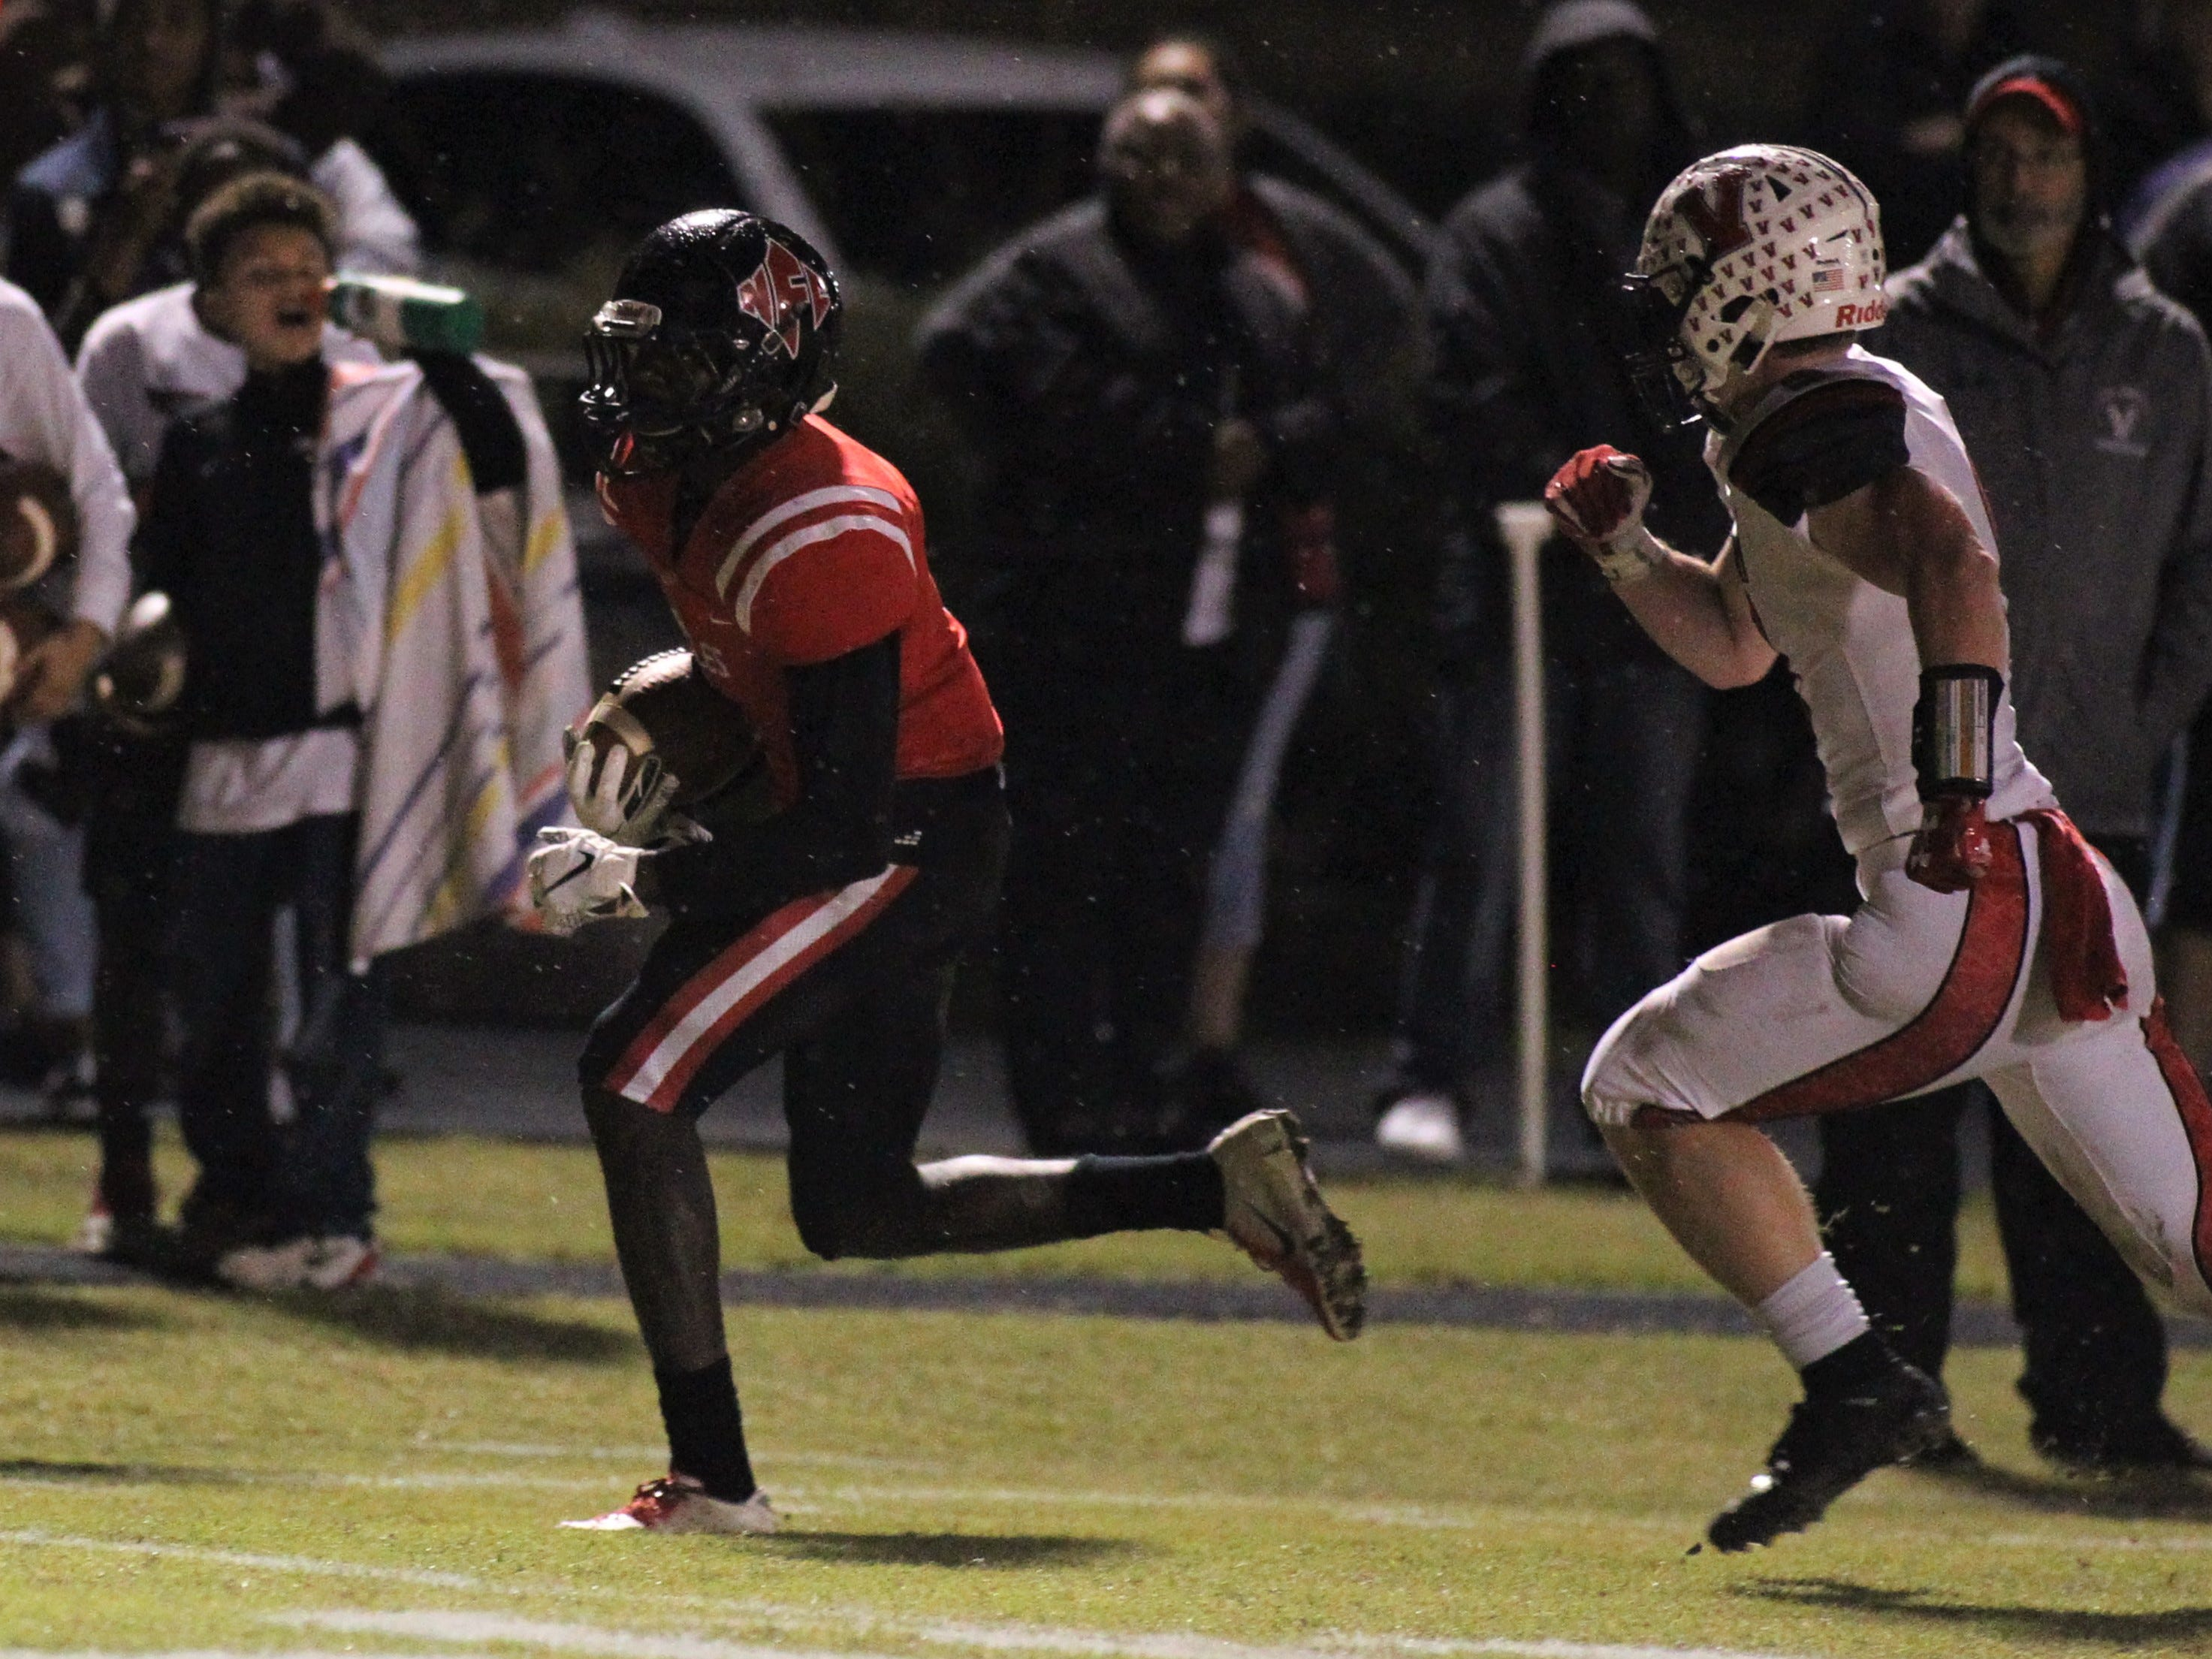 NFC beat Victory Christian 23-20 on Friday night in a Class 2A state semifinal.